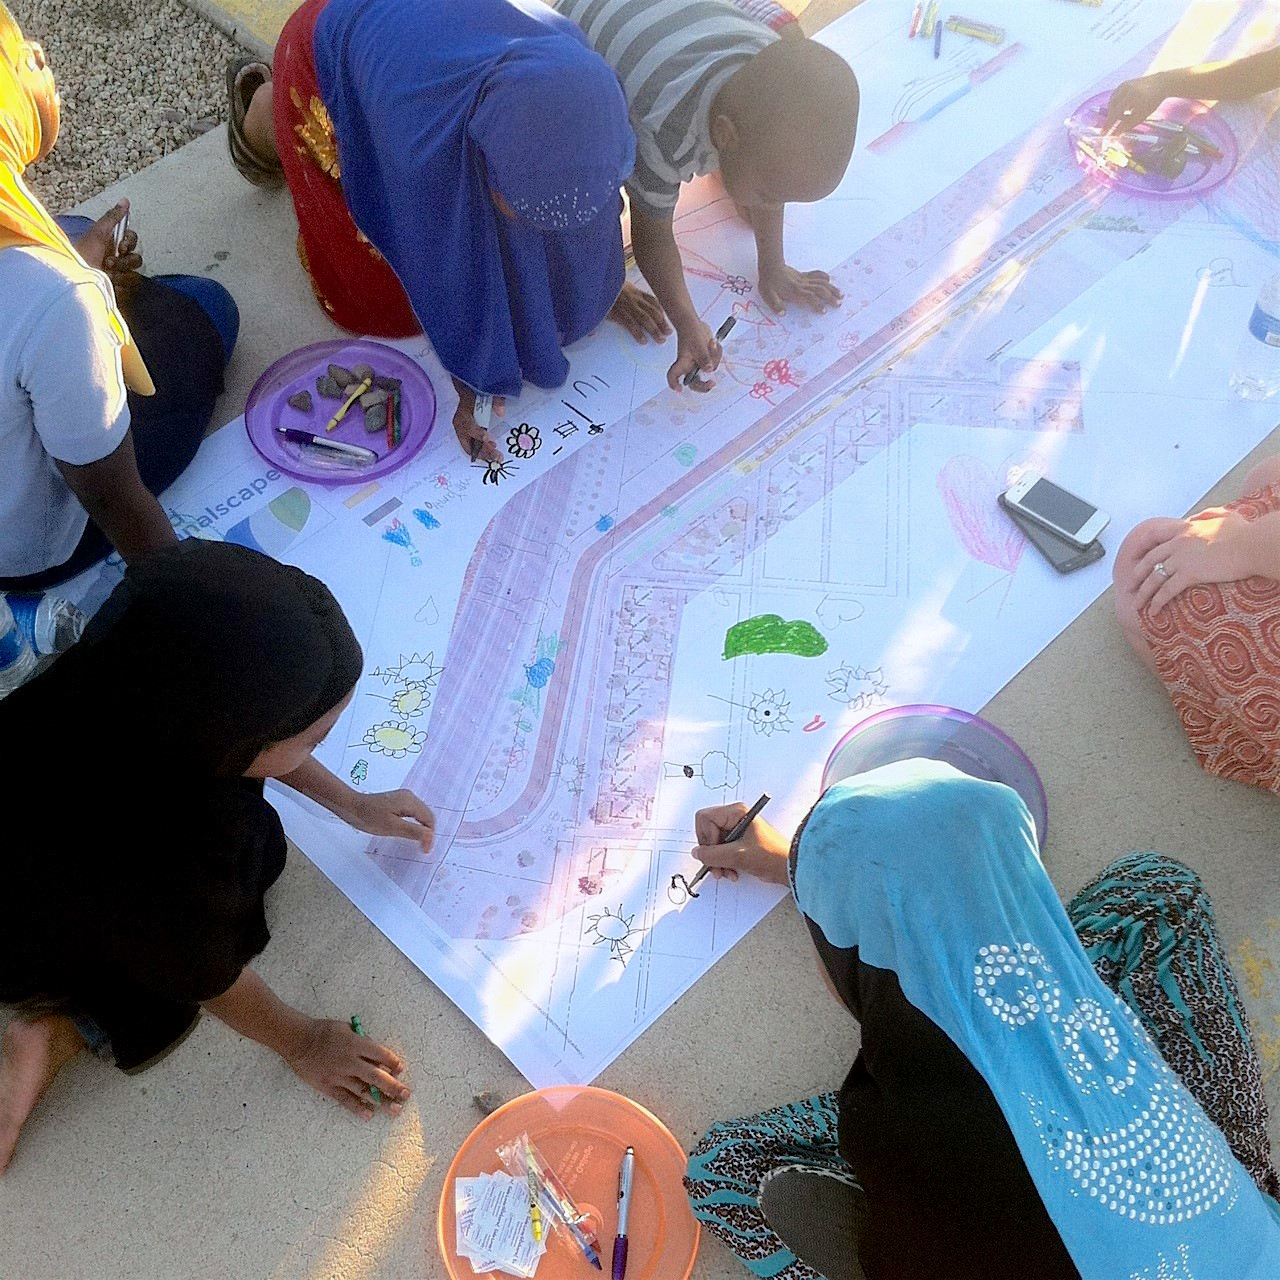 Children working on art project on ground